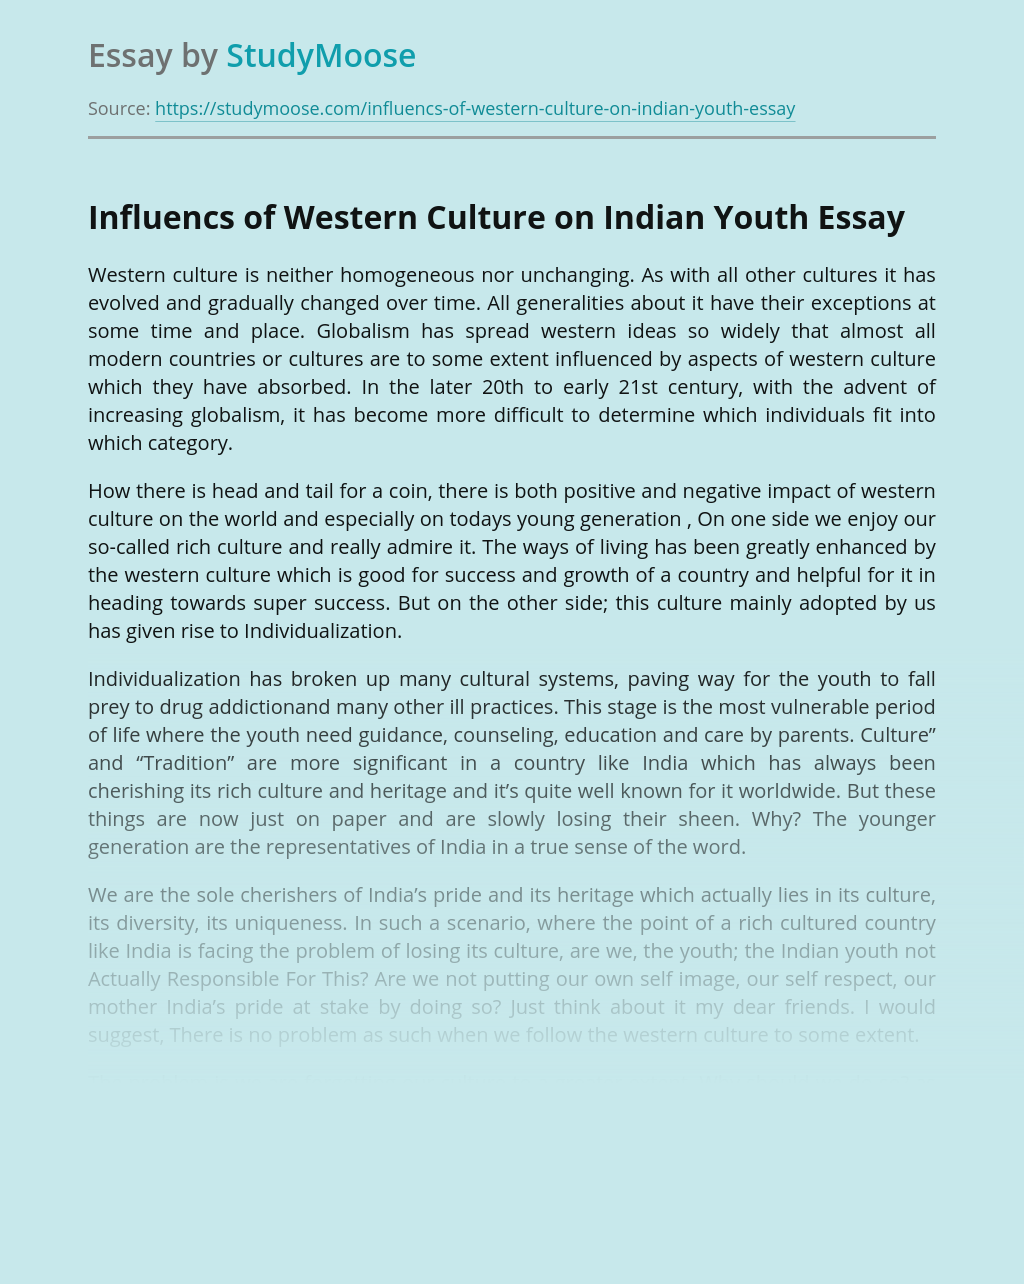 Influencs of Western Culture on Indian Youth